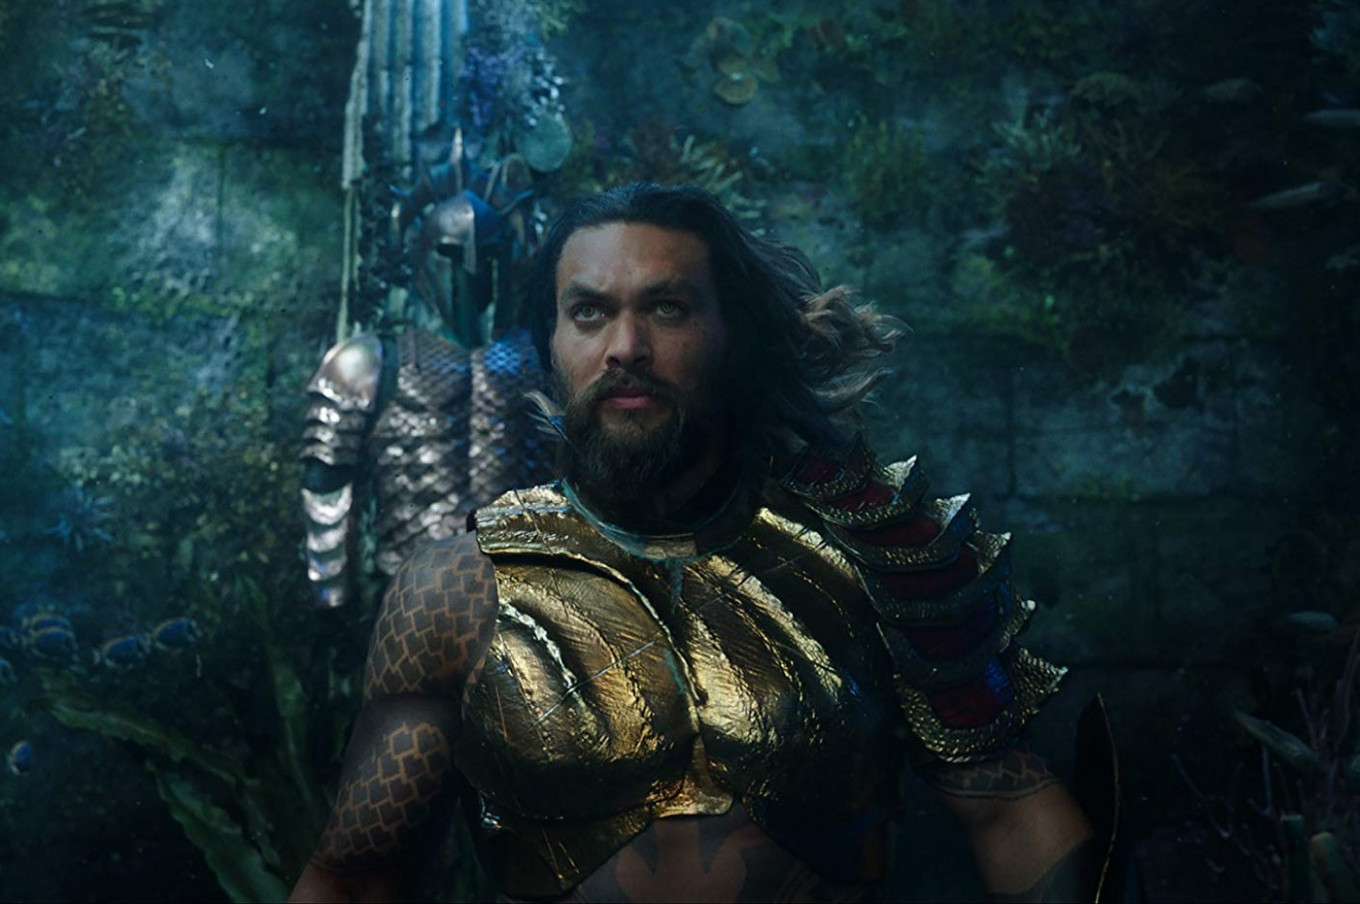 'Aquaman' spinoff 'The Trench' could explore undersea horror